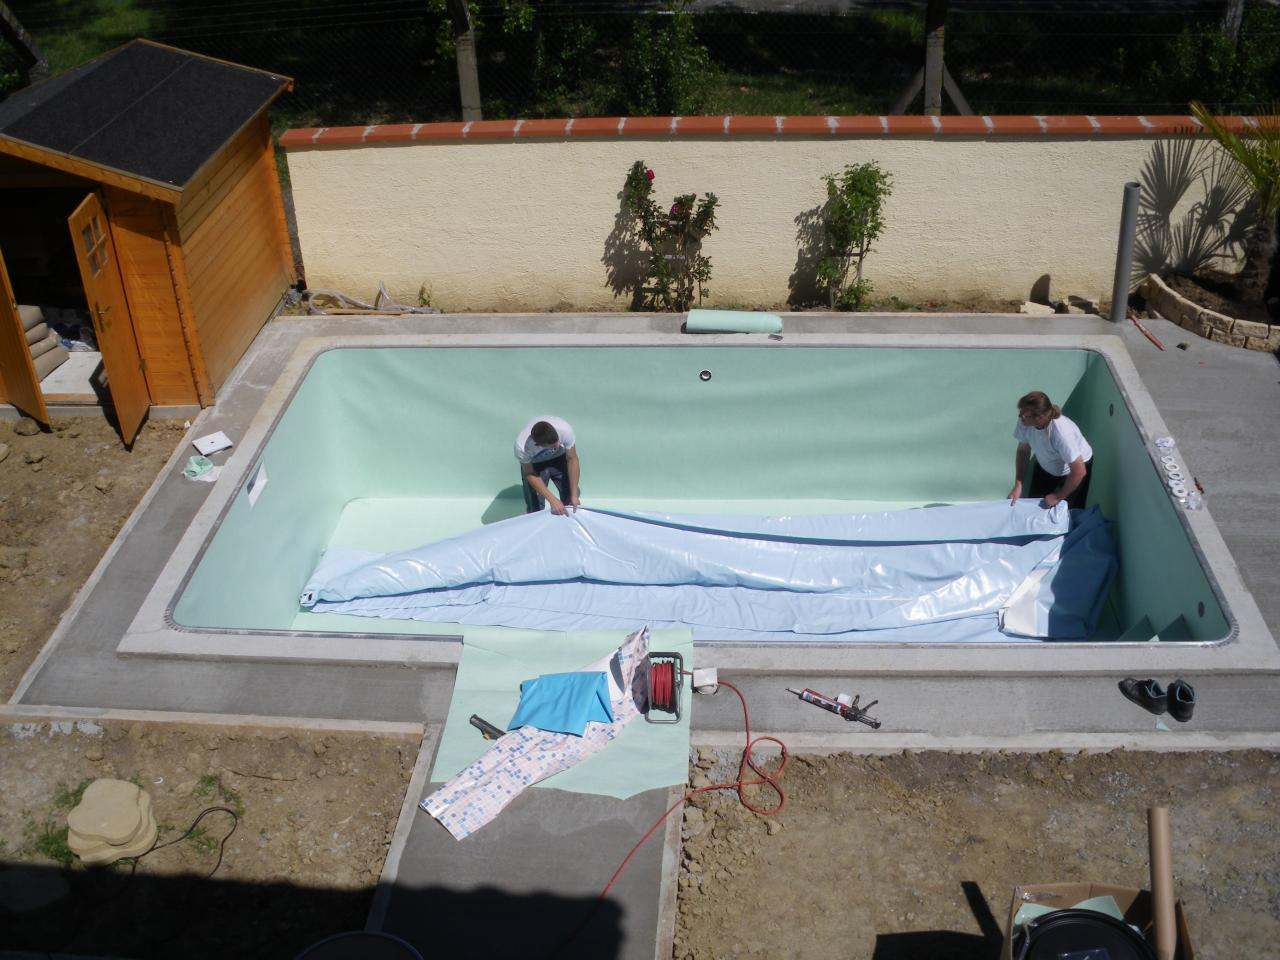 Piscine guide choix de solution co t et devis en ligne for Piscine en parpaing